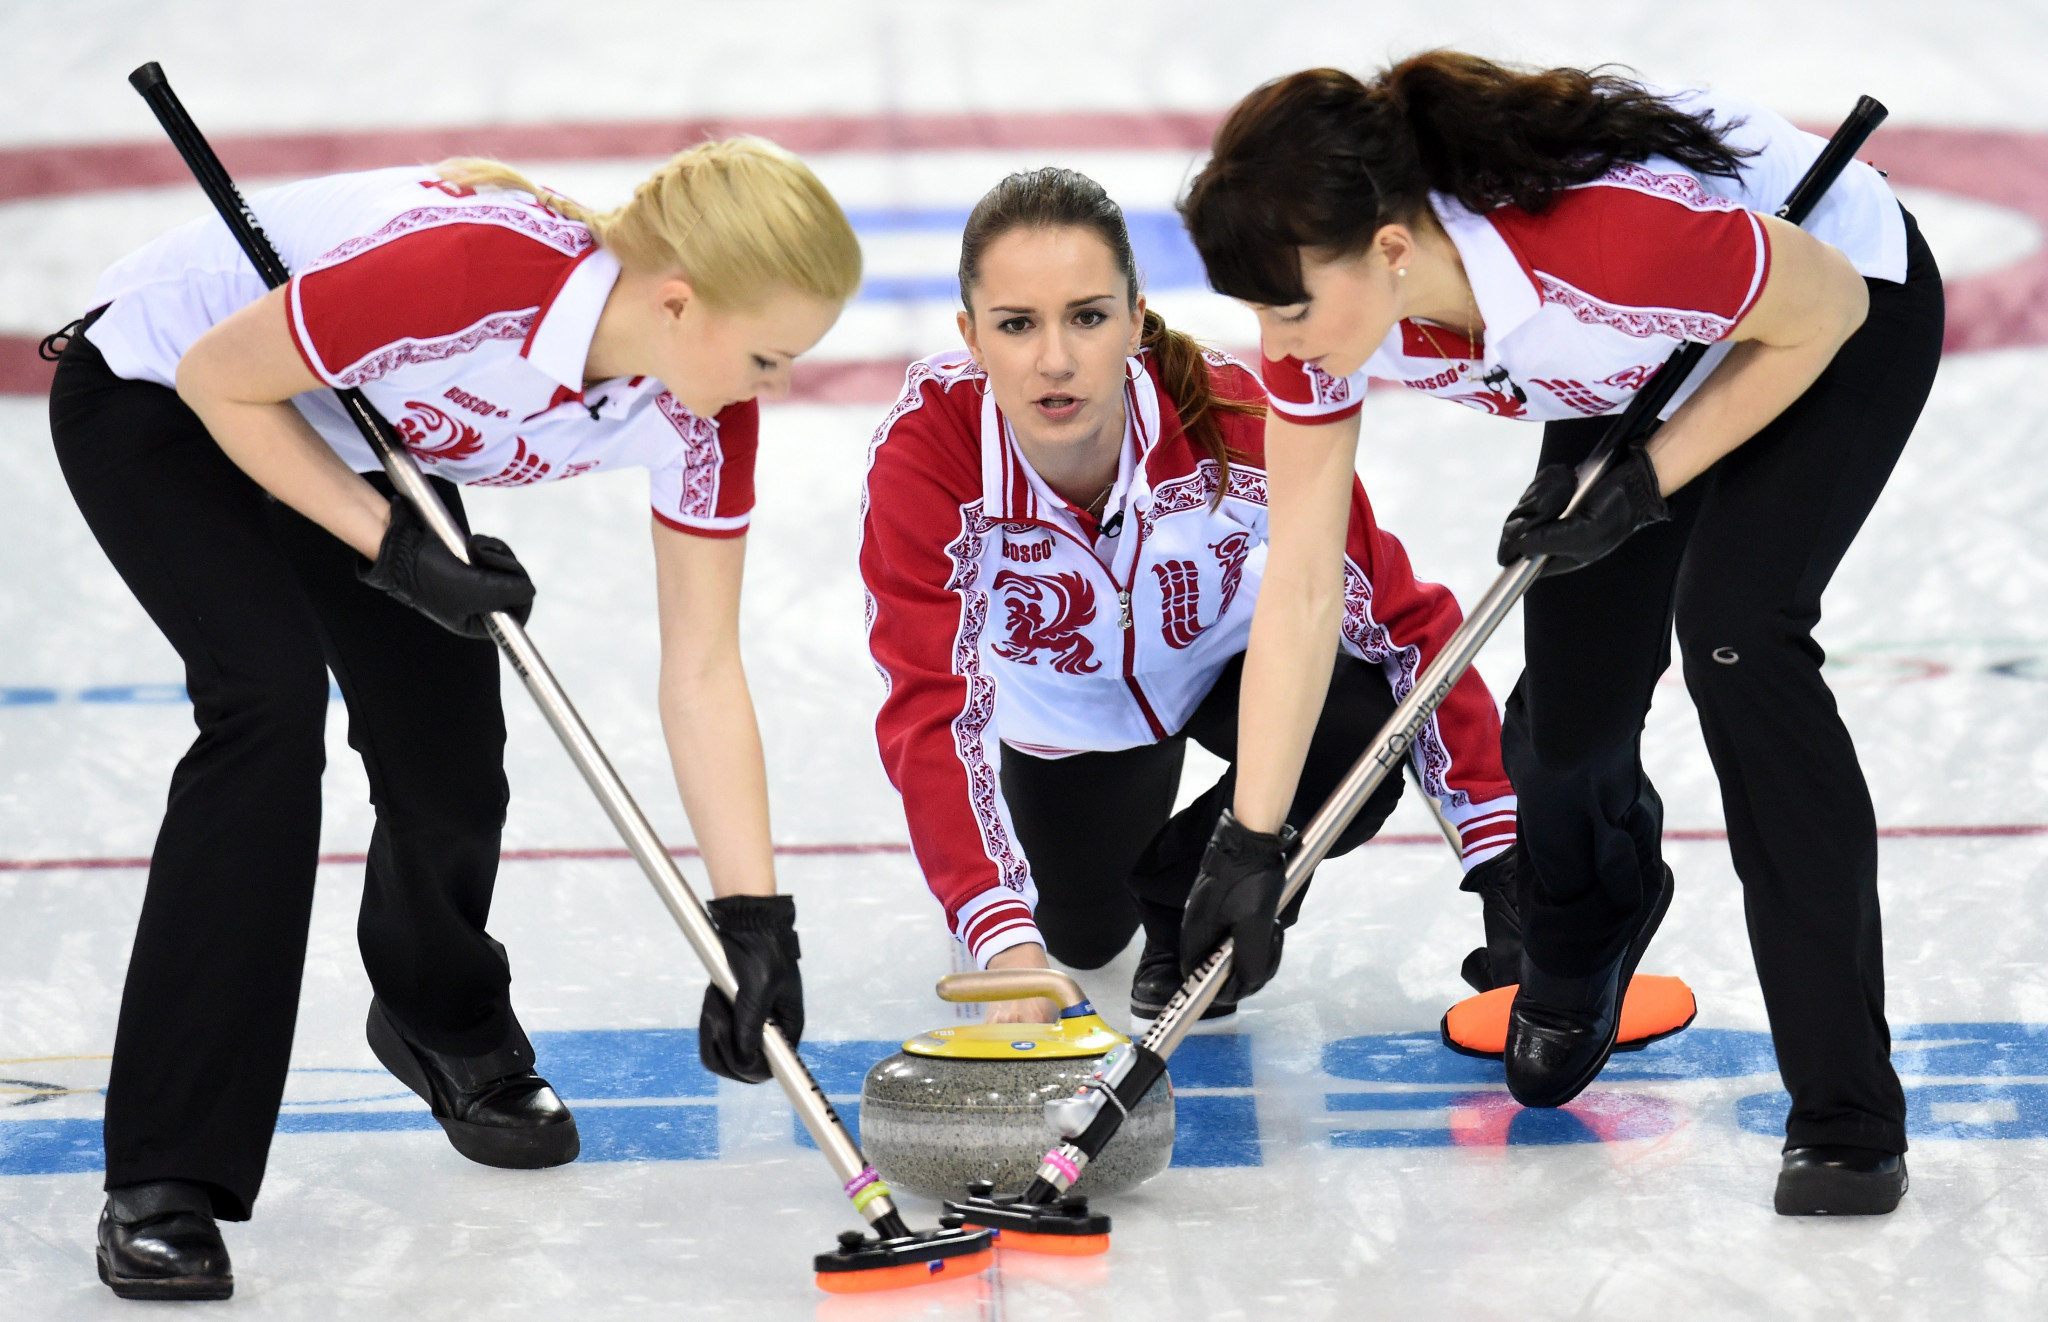 Ekaterina Galkina, right, pictured competing as part of the Russian team at Sochi 2014 ©Getty Images